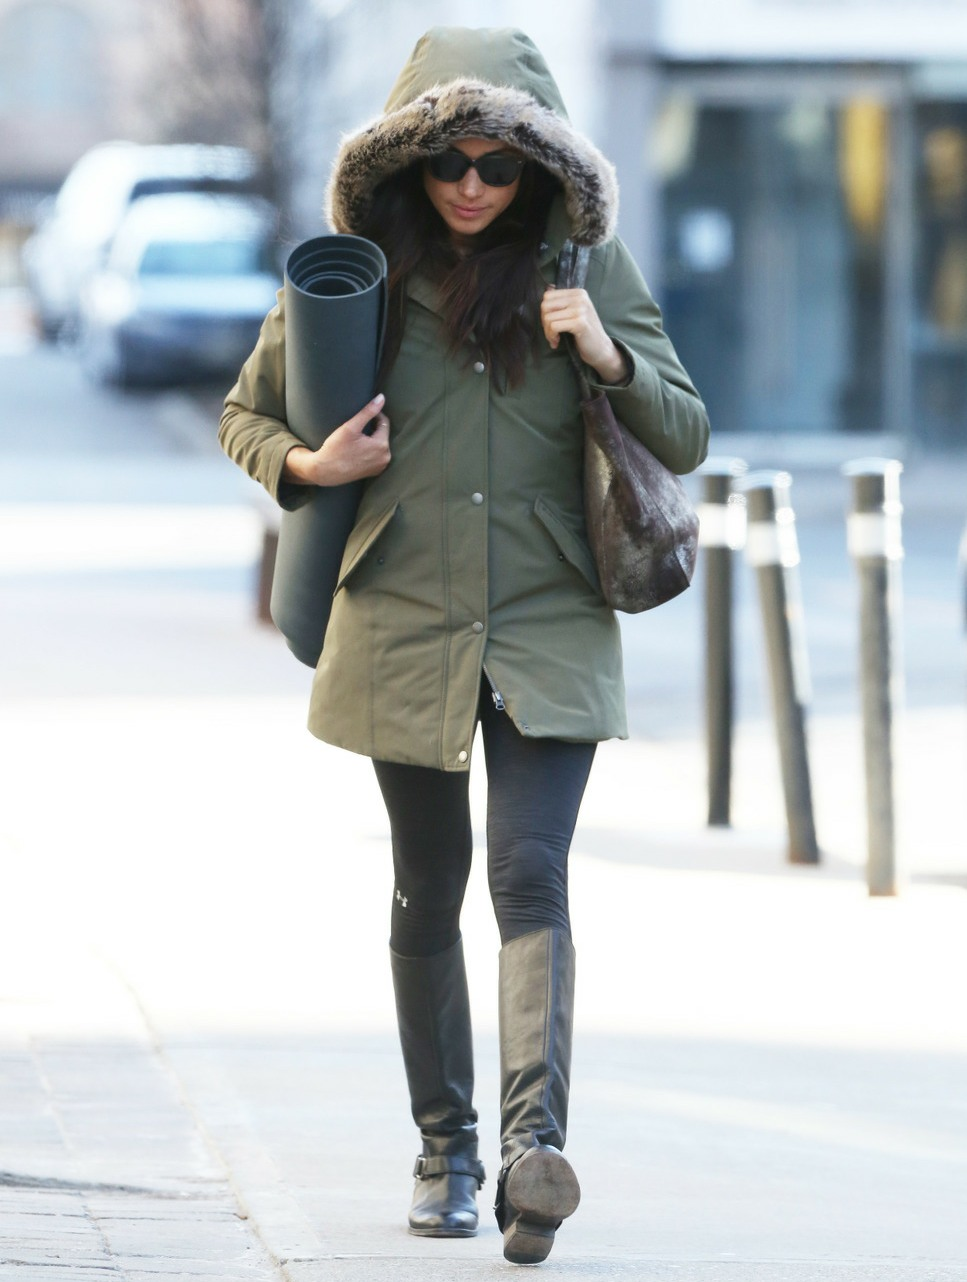 Prince Harry's girlfriend Meghan Markle leaves Yoga in Toronto, Canada. Currently in a extreme weather alert for the Toronto area. Meghan was doing a Hot Yoga session that lasted 1 hour and 15 minutes.